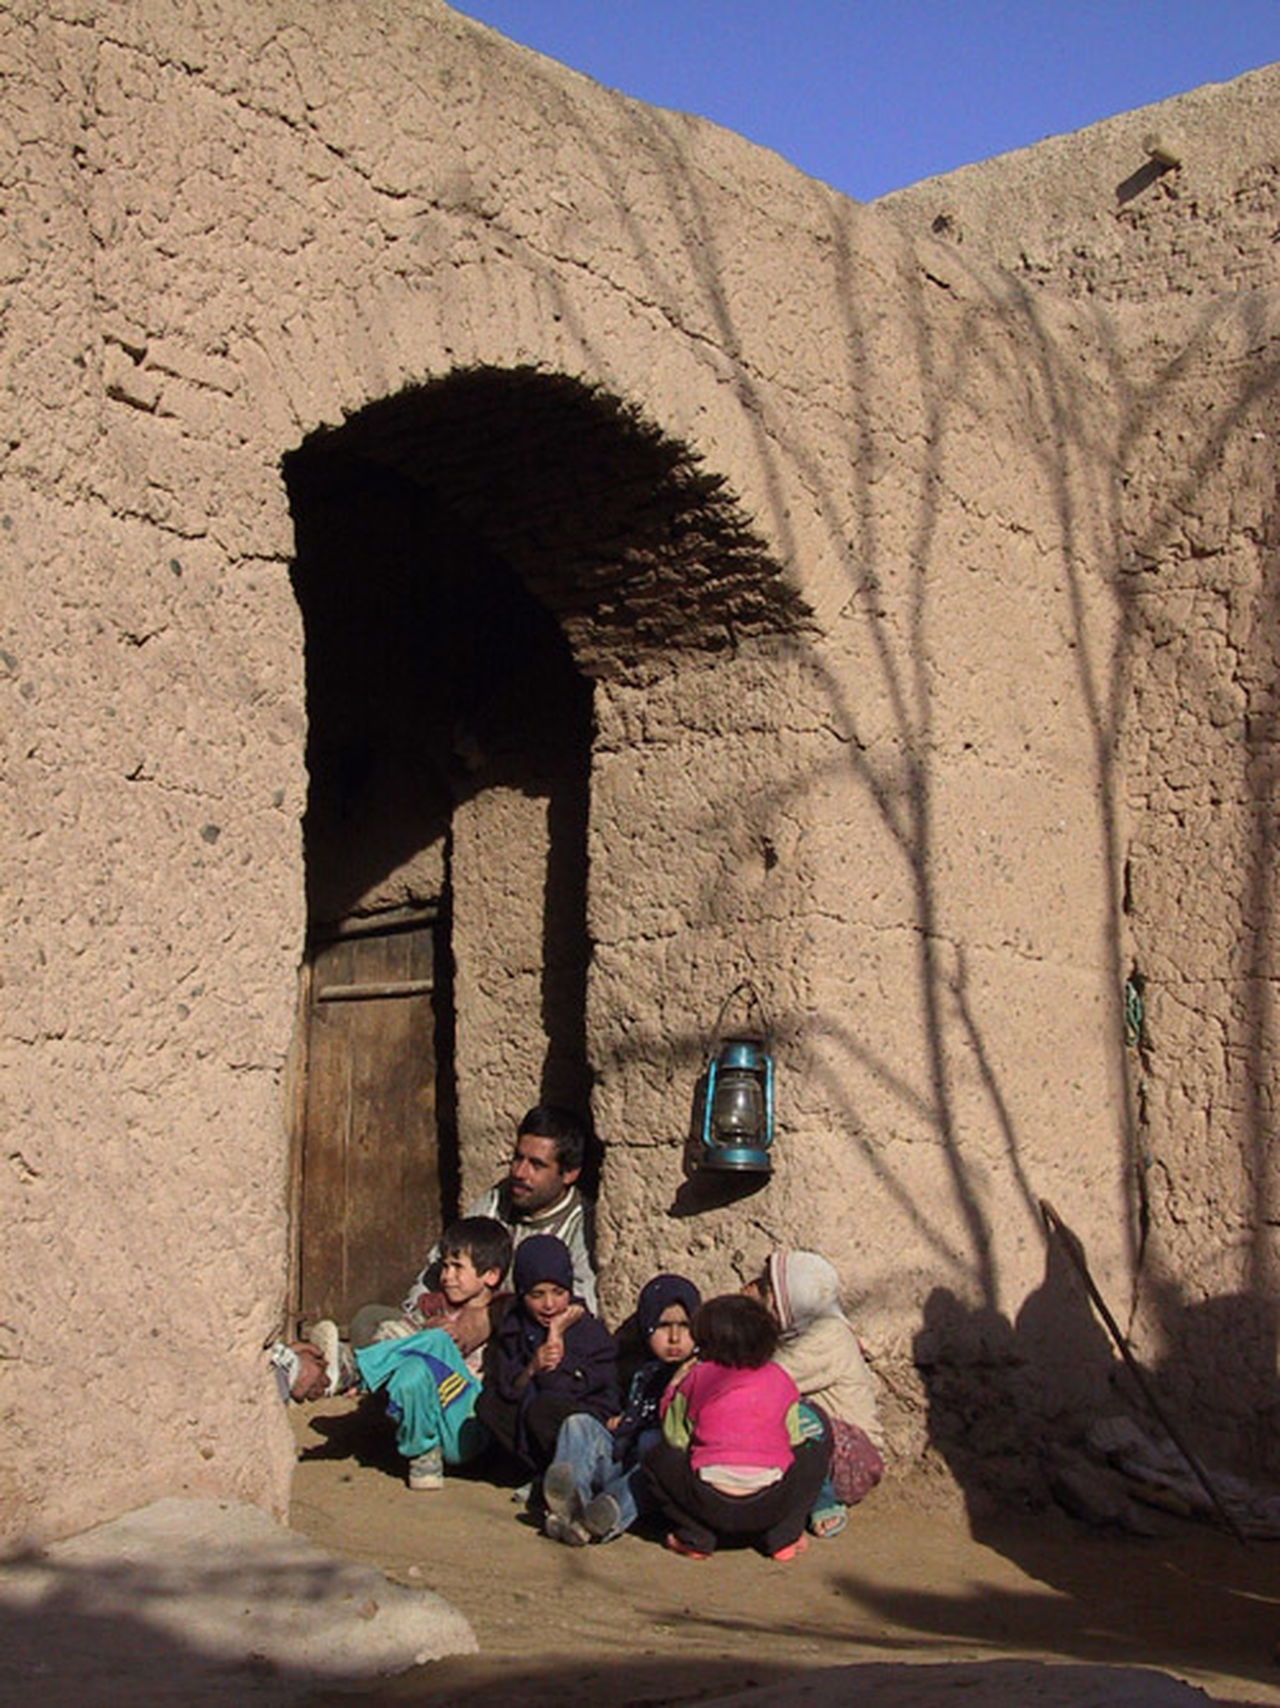 Village Middle East Travel Family Time Oil Lamp Clay Walls Poor N Happy